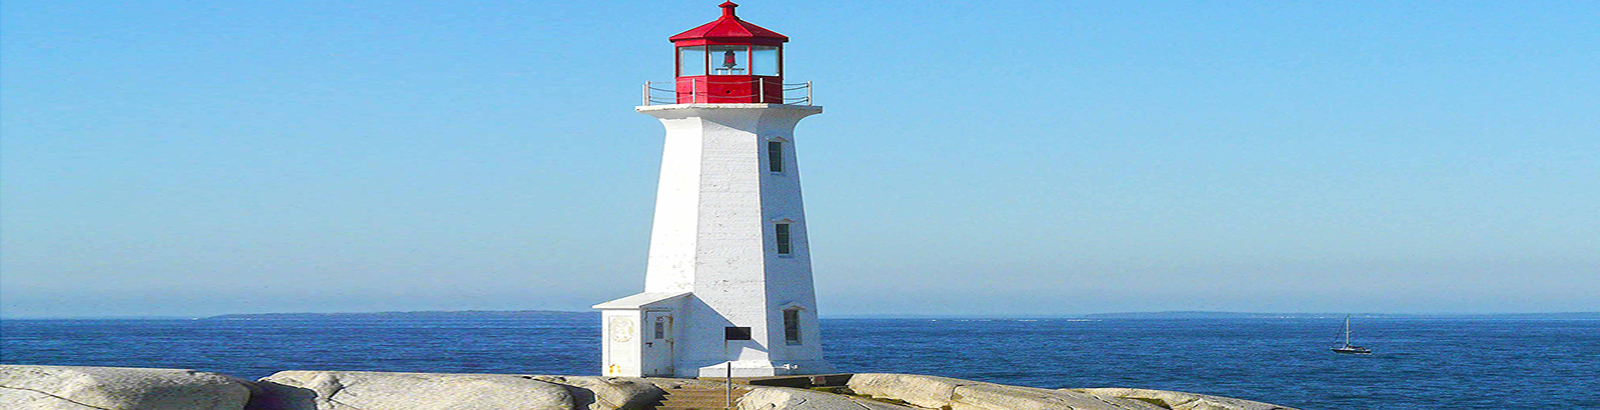 lighthouse4001